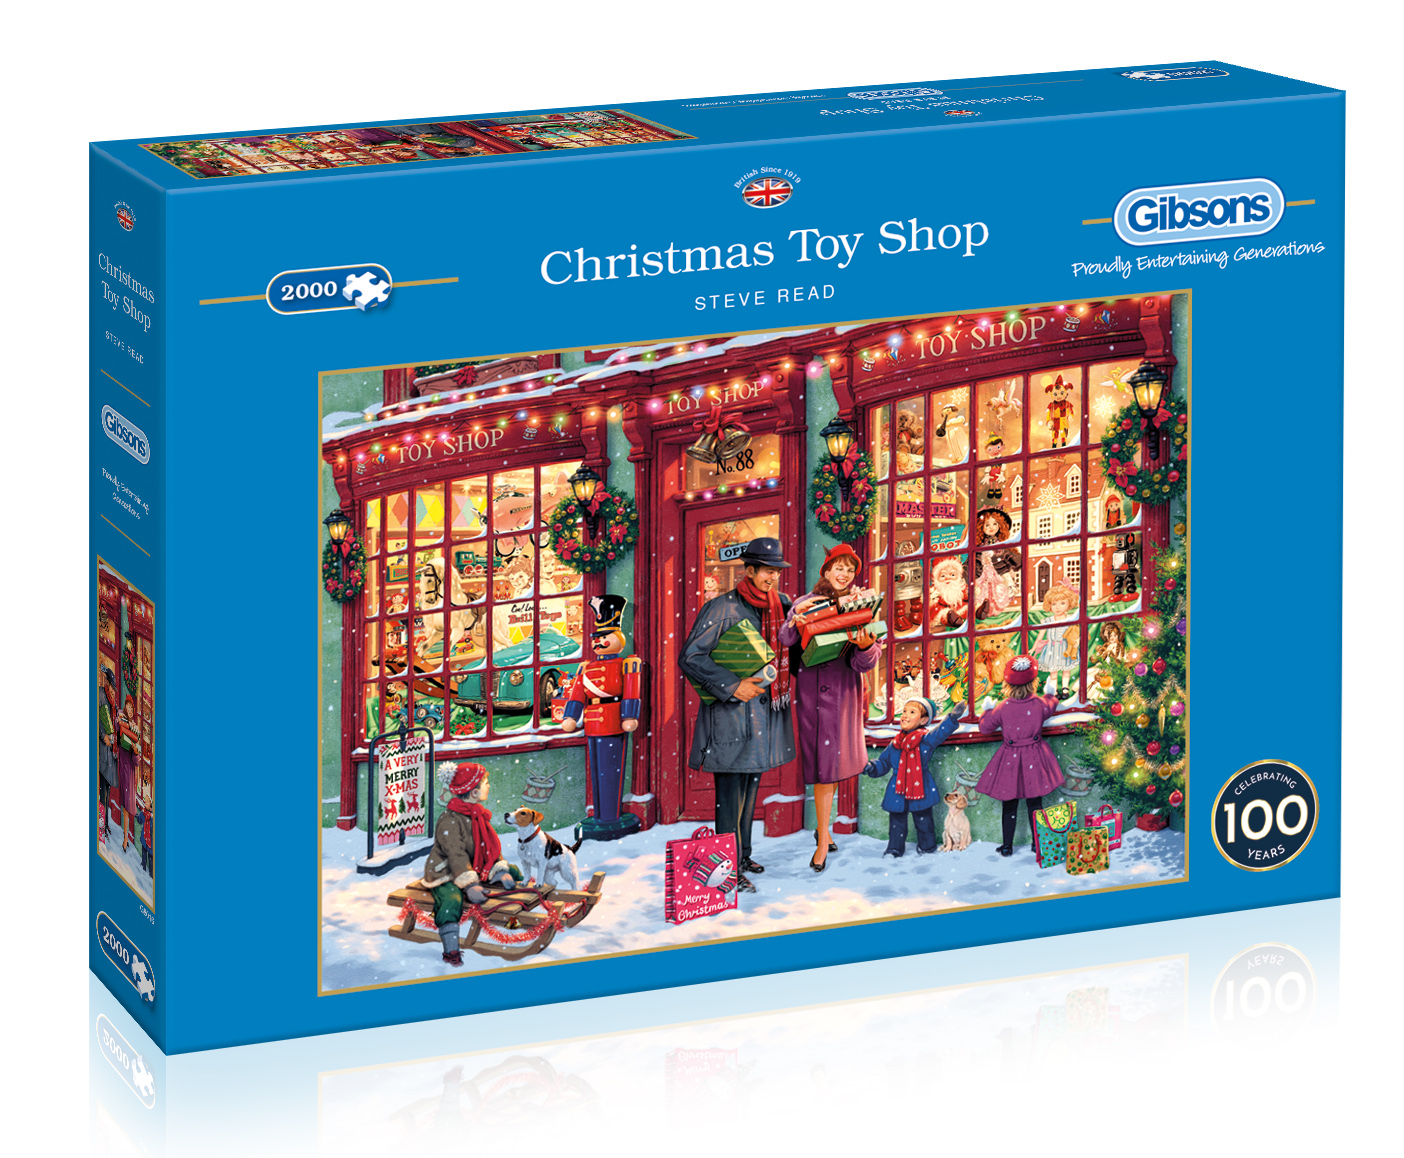 Christmas Toy Shop 2000pc Jigsaw Puzzle